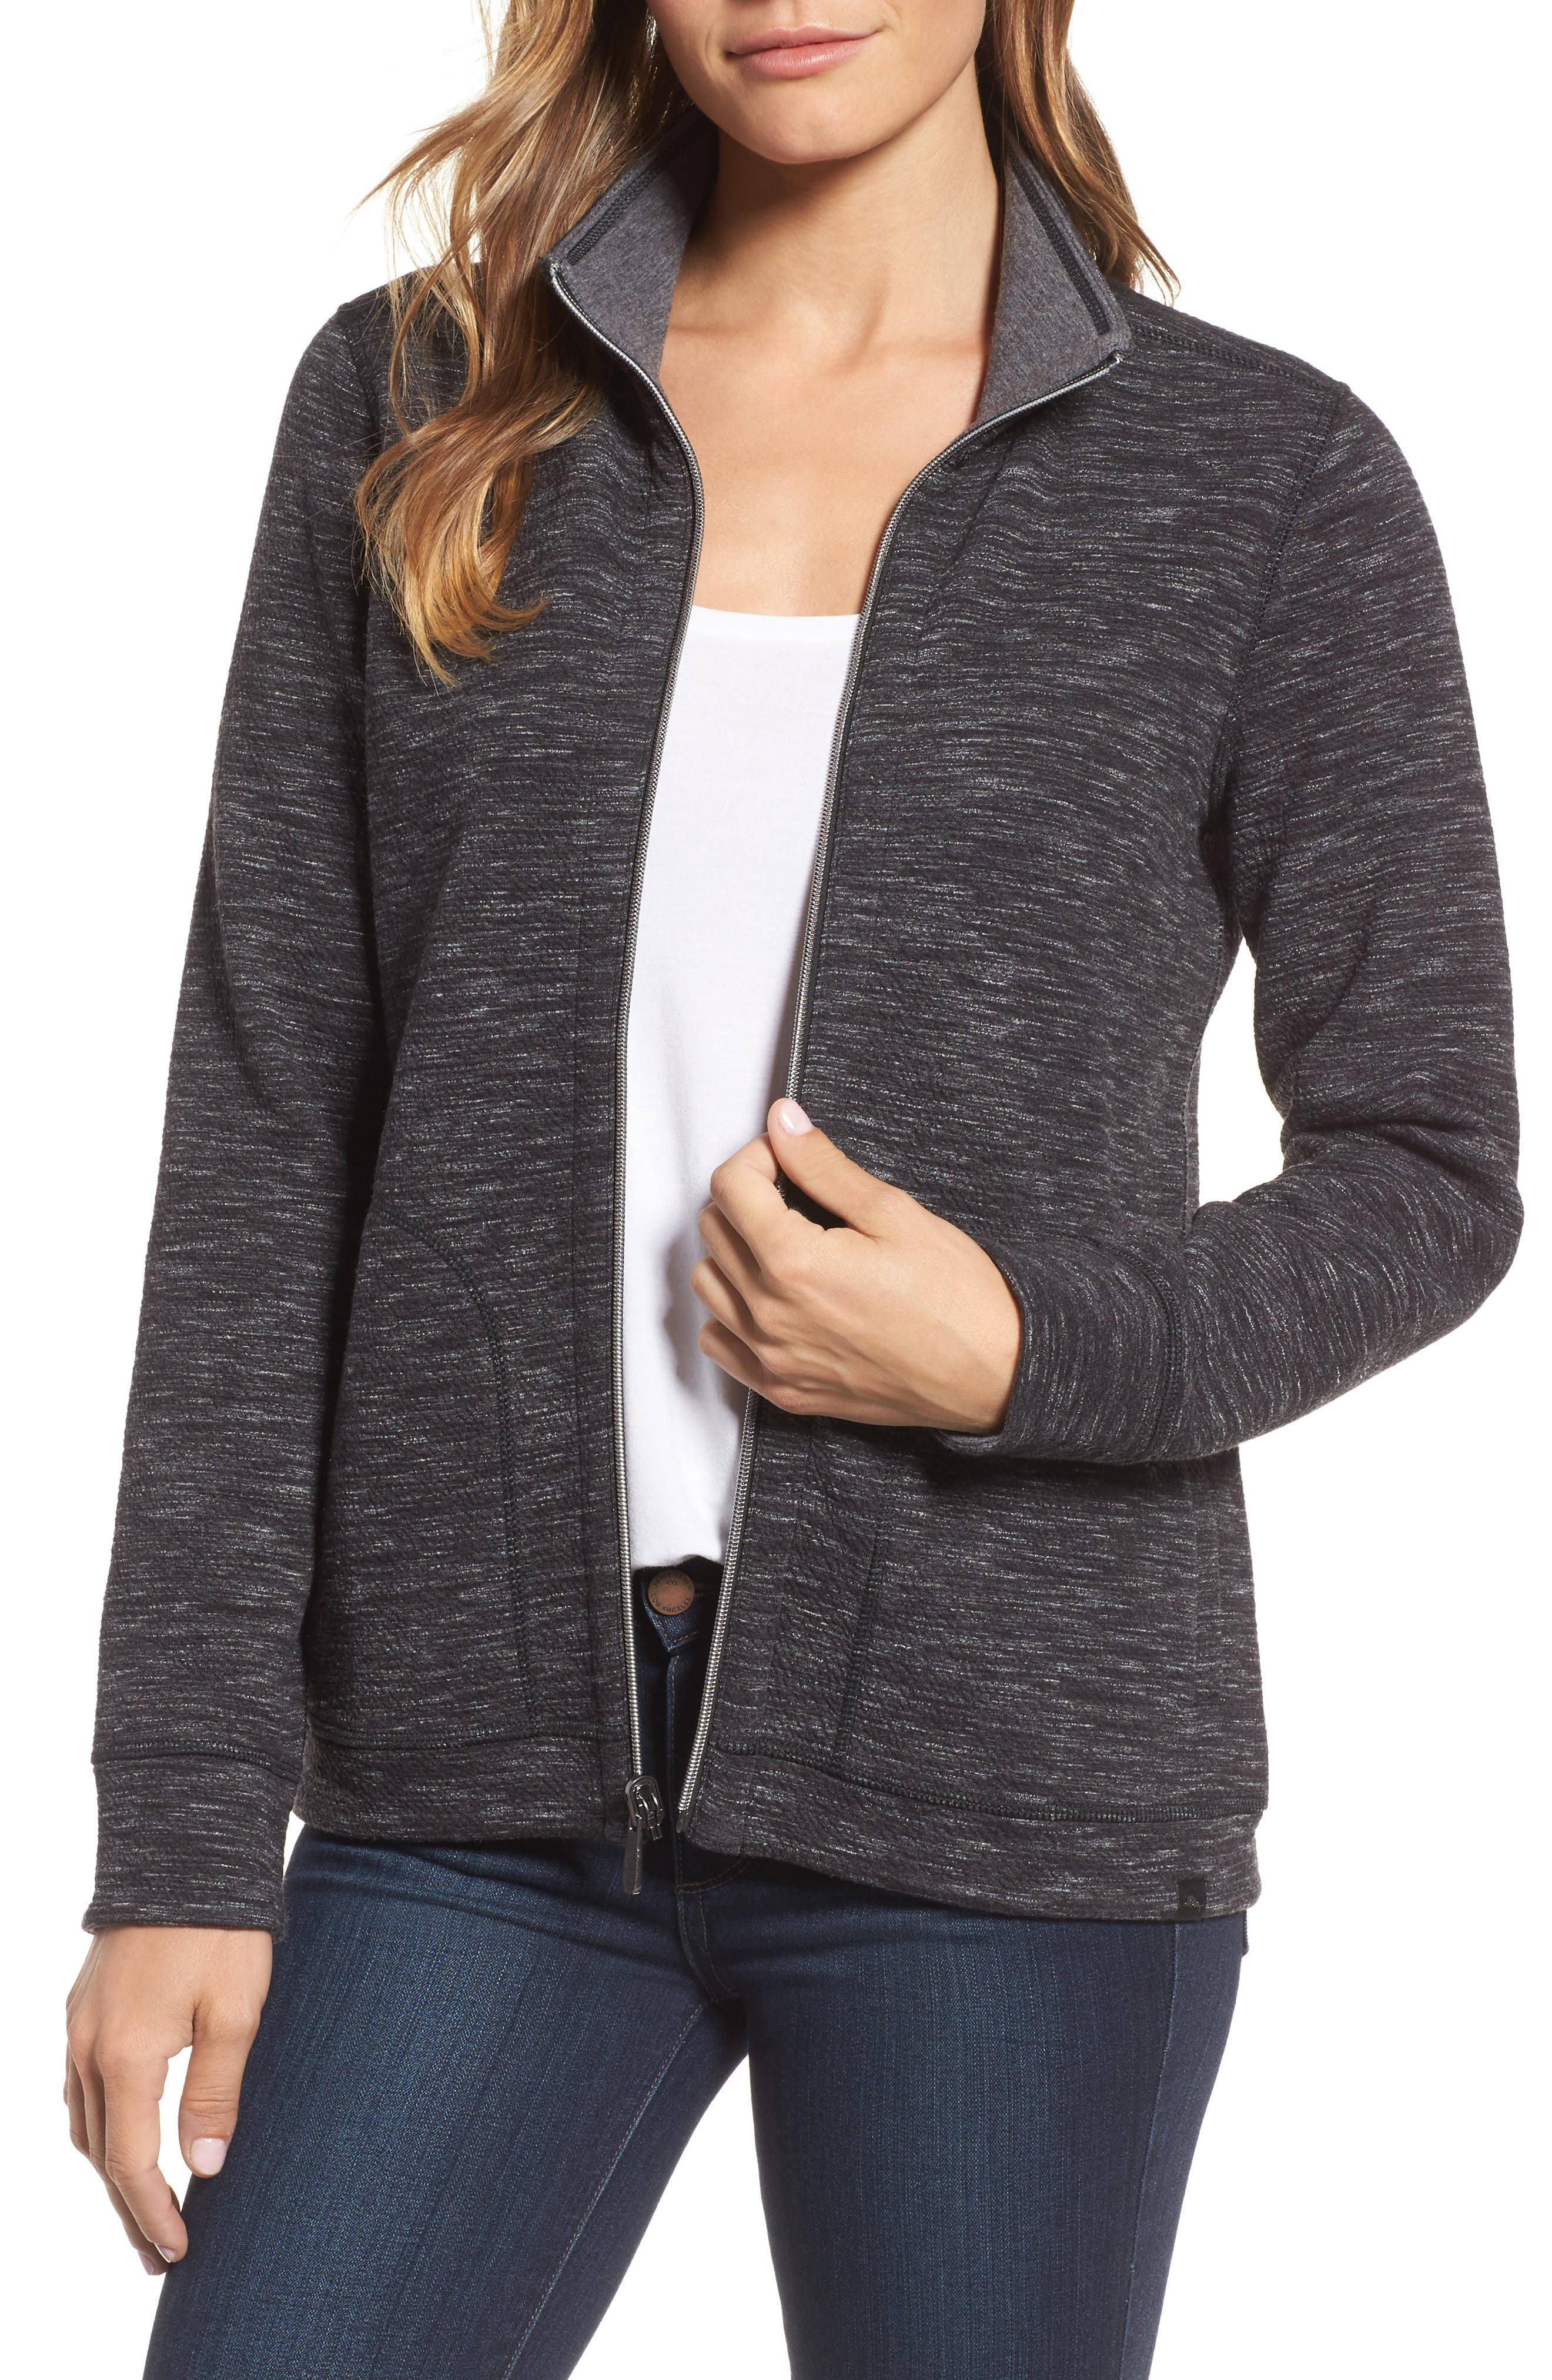 Reversible Marled Knit Jacket,                             Main thumbnail 1, color,                             Noir Heather